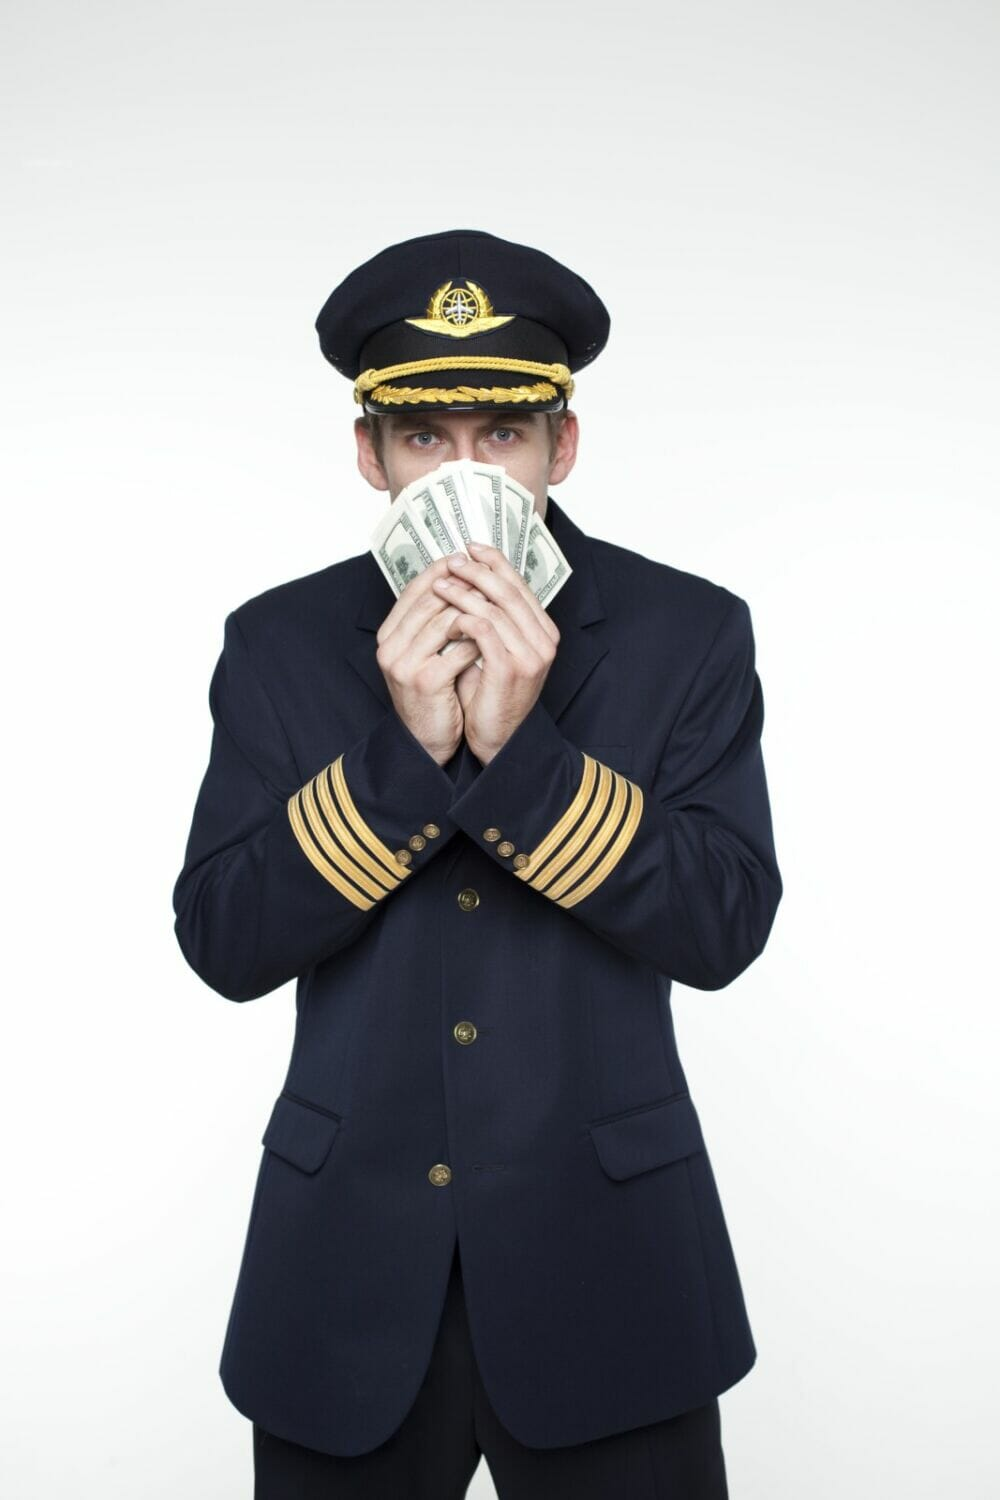 What is the salary of an airline pilot